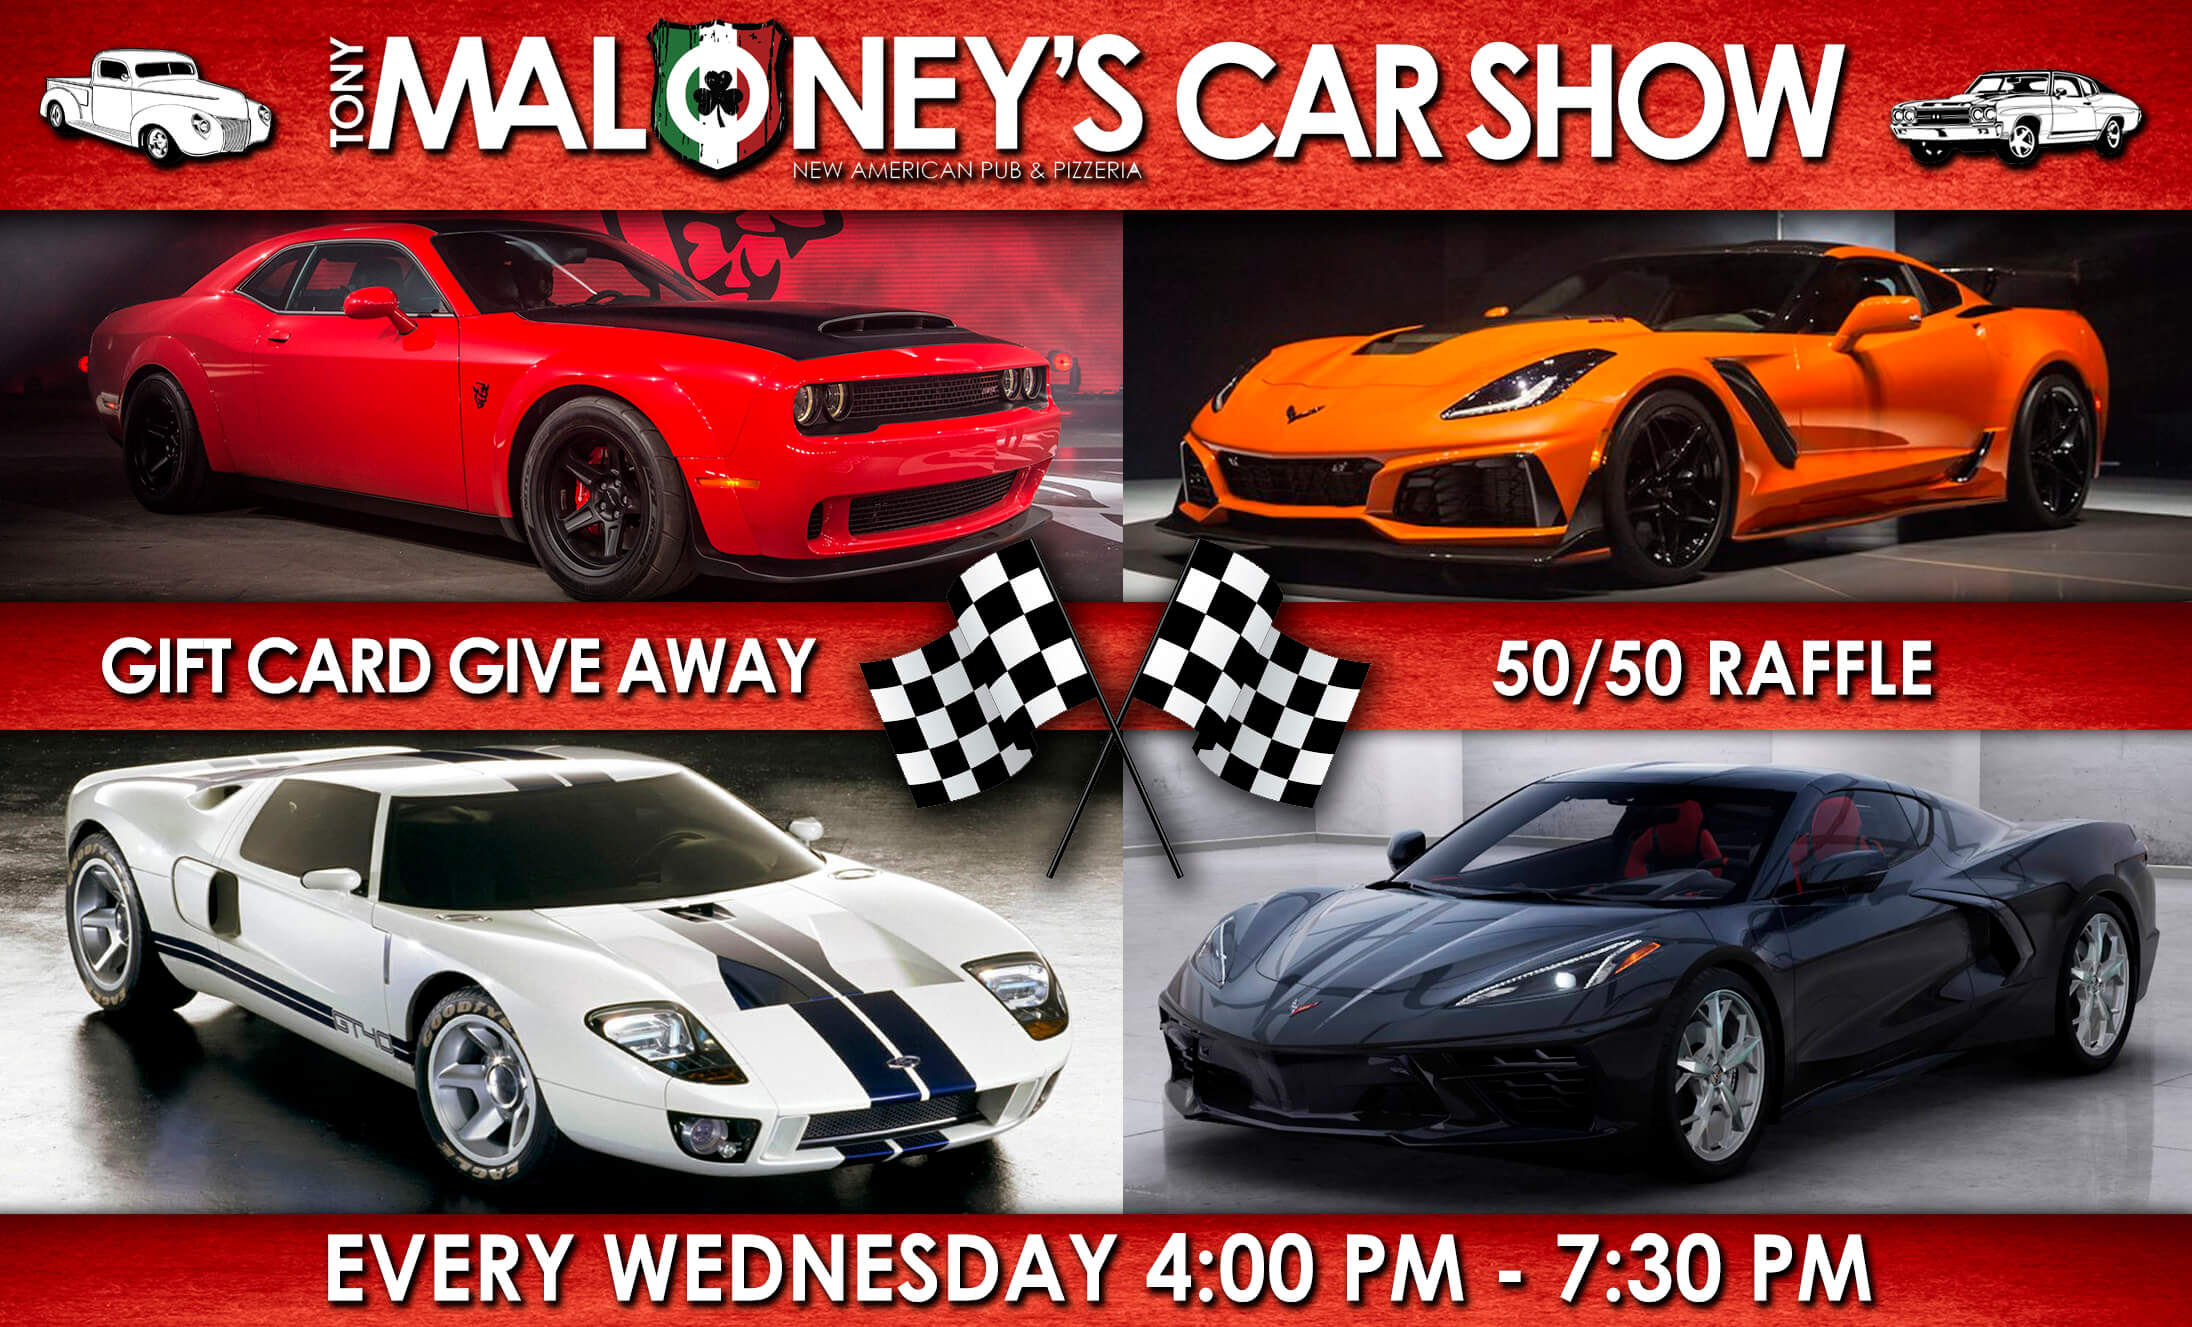 Car Show Every Wednesday from 4pm to 7pm - Gift Card Giveaway and 50/50 raffle